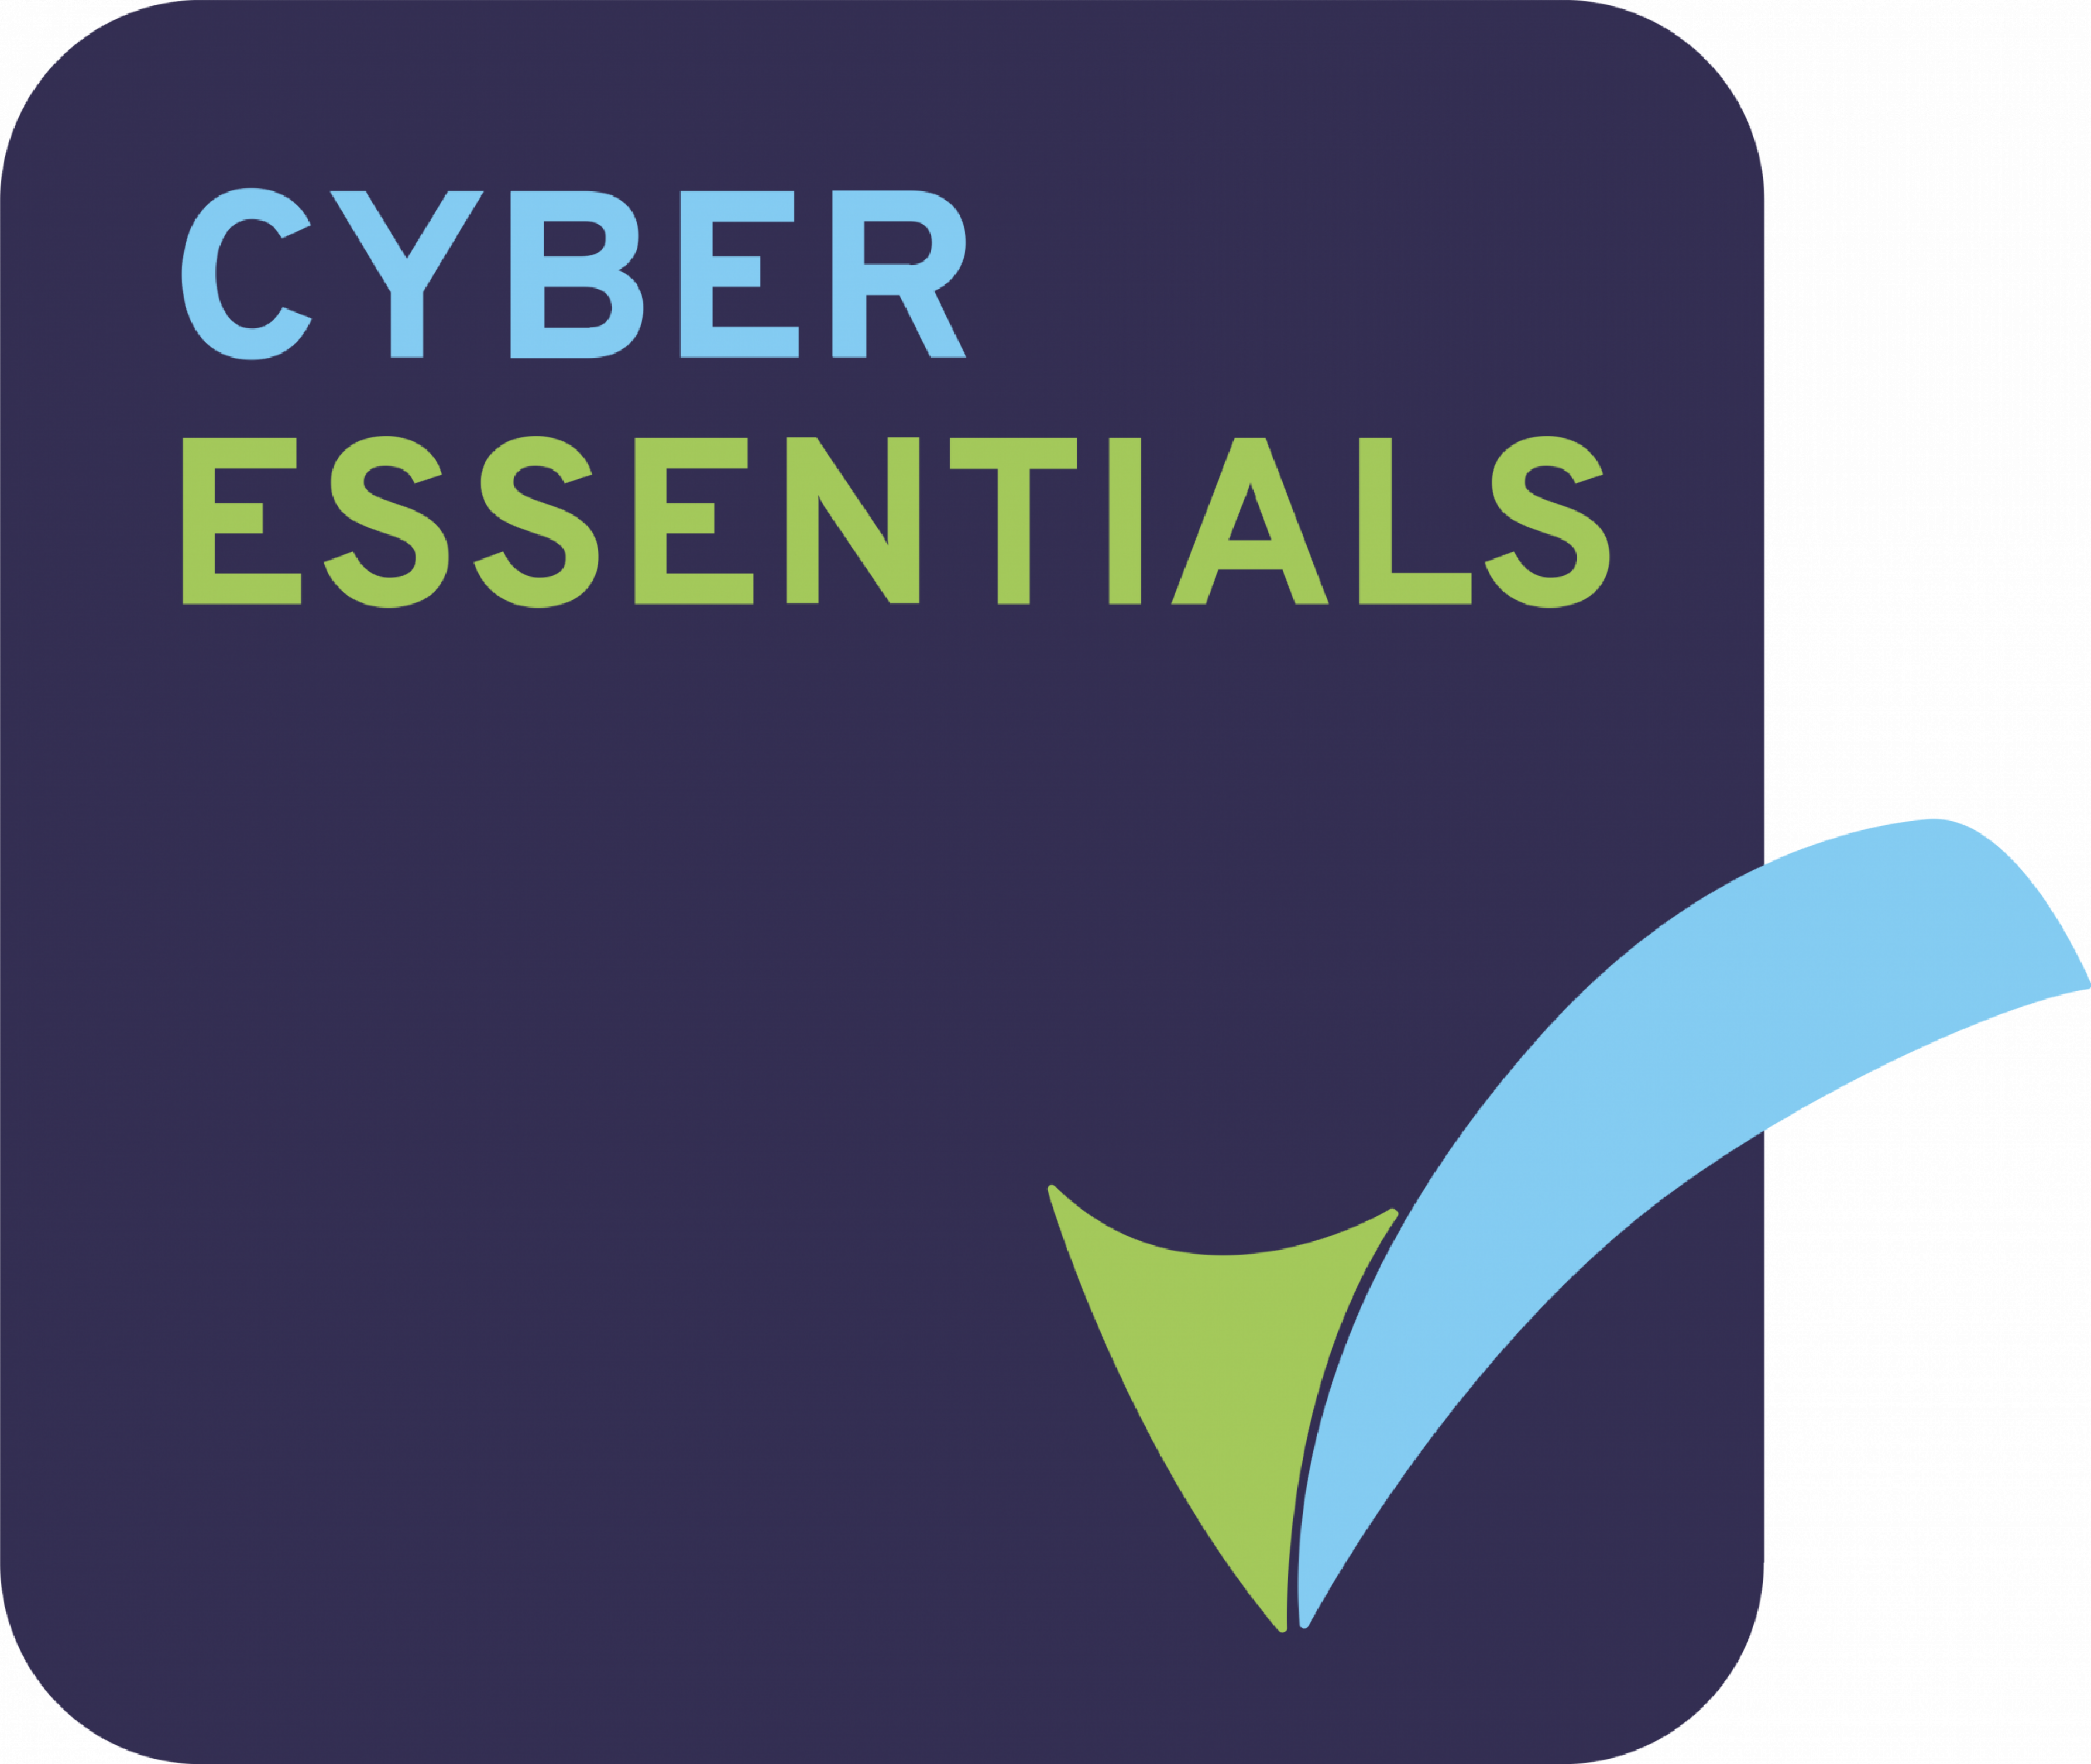 P1vital Products Ltd achieved Cyber Essentials certification.